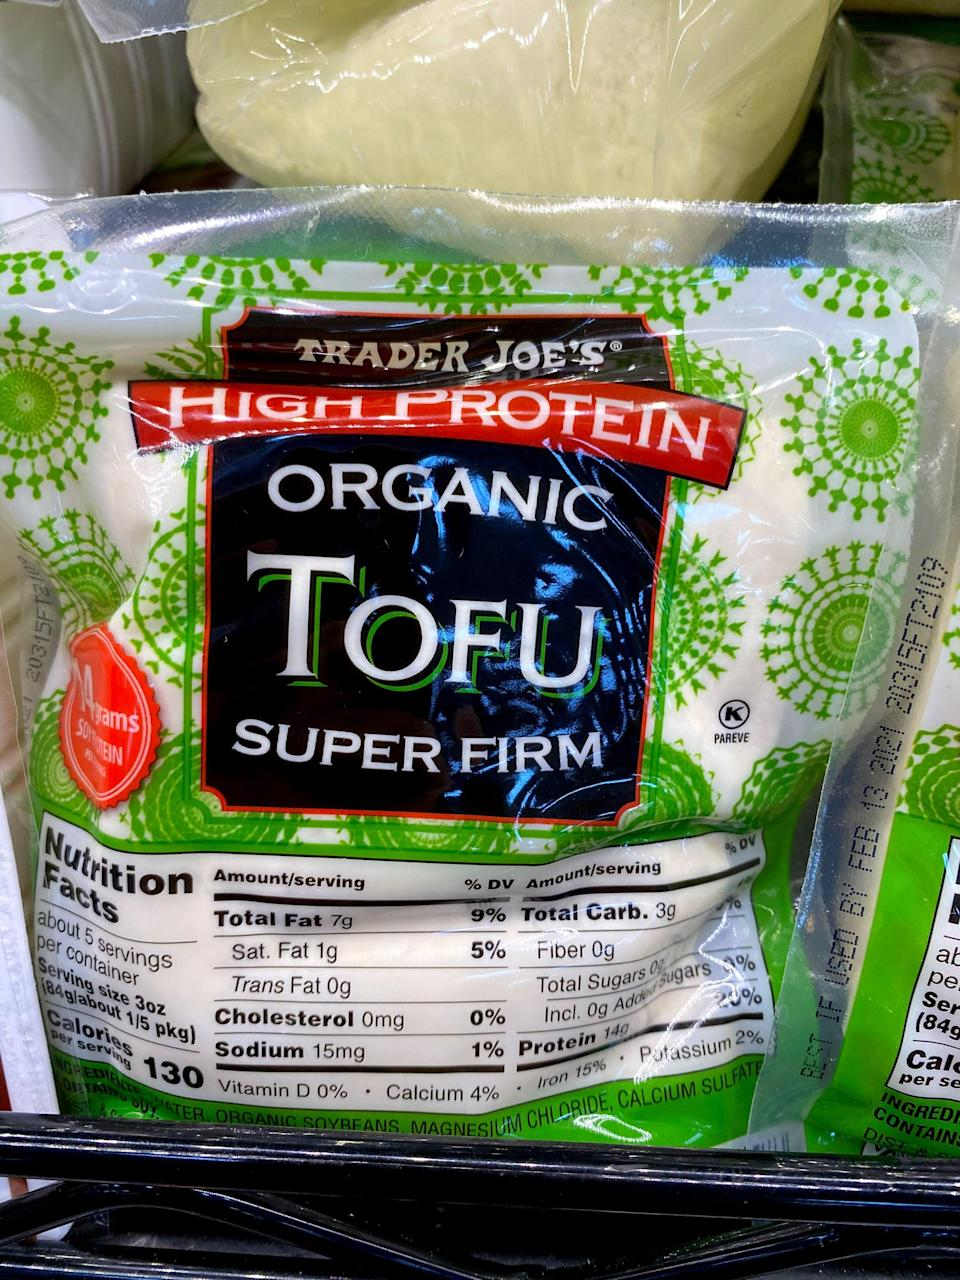 """<p>I've always loved tofu, but since getting an air fryer, my tofu game is on a whole new level. This High-Protein Super Firm Organic Tofu has such a dense, firm texture and is delicious simply sprinkled with garlic powder. It cooks up fast and is great paired with roasted veggies, used in a stir fry, <a href=""""https://www.popsugar.com/fitness/vegan-coconut-lentil-curry-with-tofu-broccoli-recipe-47100354"""" class=""""link rapid-noclick-resp"""" rel=""""nofollow noopener"""" target=""""_blank"""" data-ylk=""""slk:added to curry"""">added to curry</a>, or used as a ricotta substitute for <a href=""""https://www.popsugar.com/fitness/Vegan-Lasagna-42940523"""" class=""""link rapid-noclick-resp"""" rel=""""nofollow noopener"""" target=""""_blank"""" data-ylk=""""slk:vegan lasagna"""">vegan lasagna</a>.</p>"""